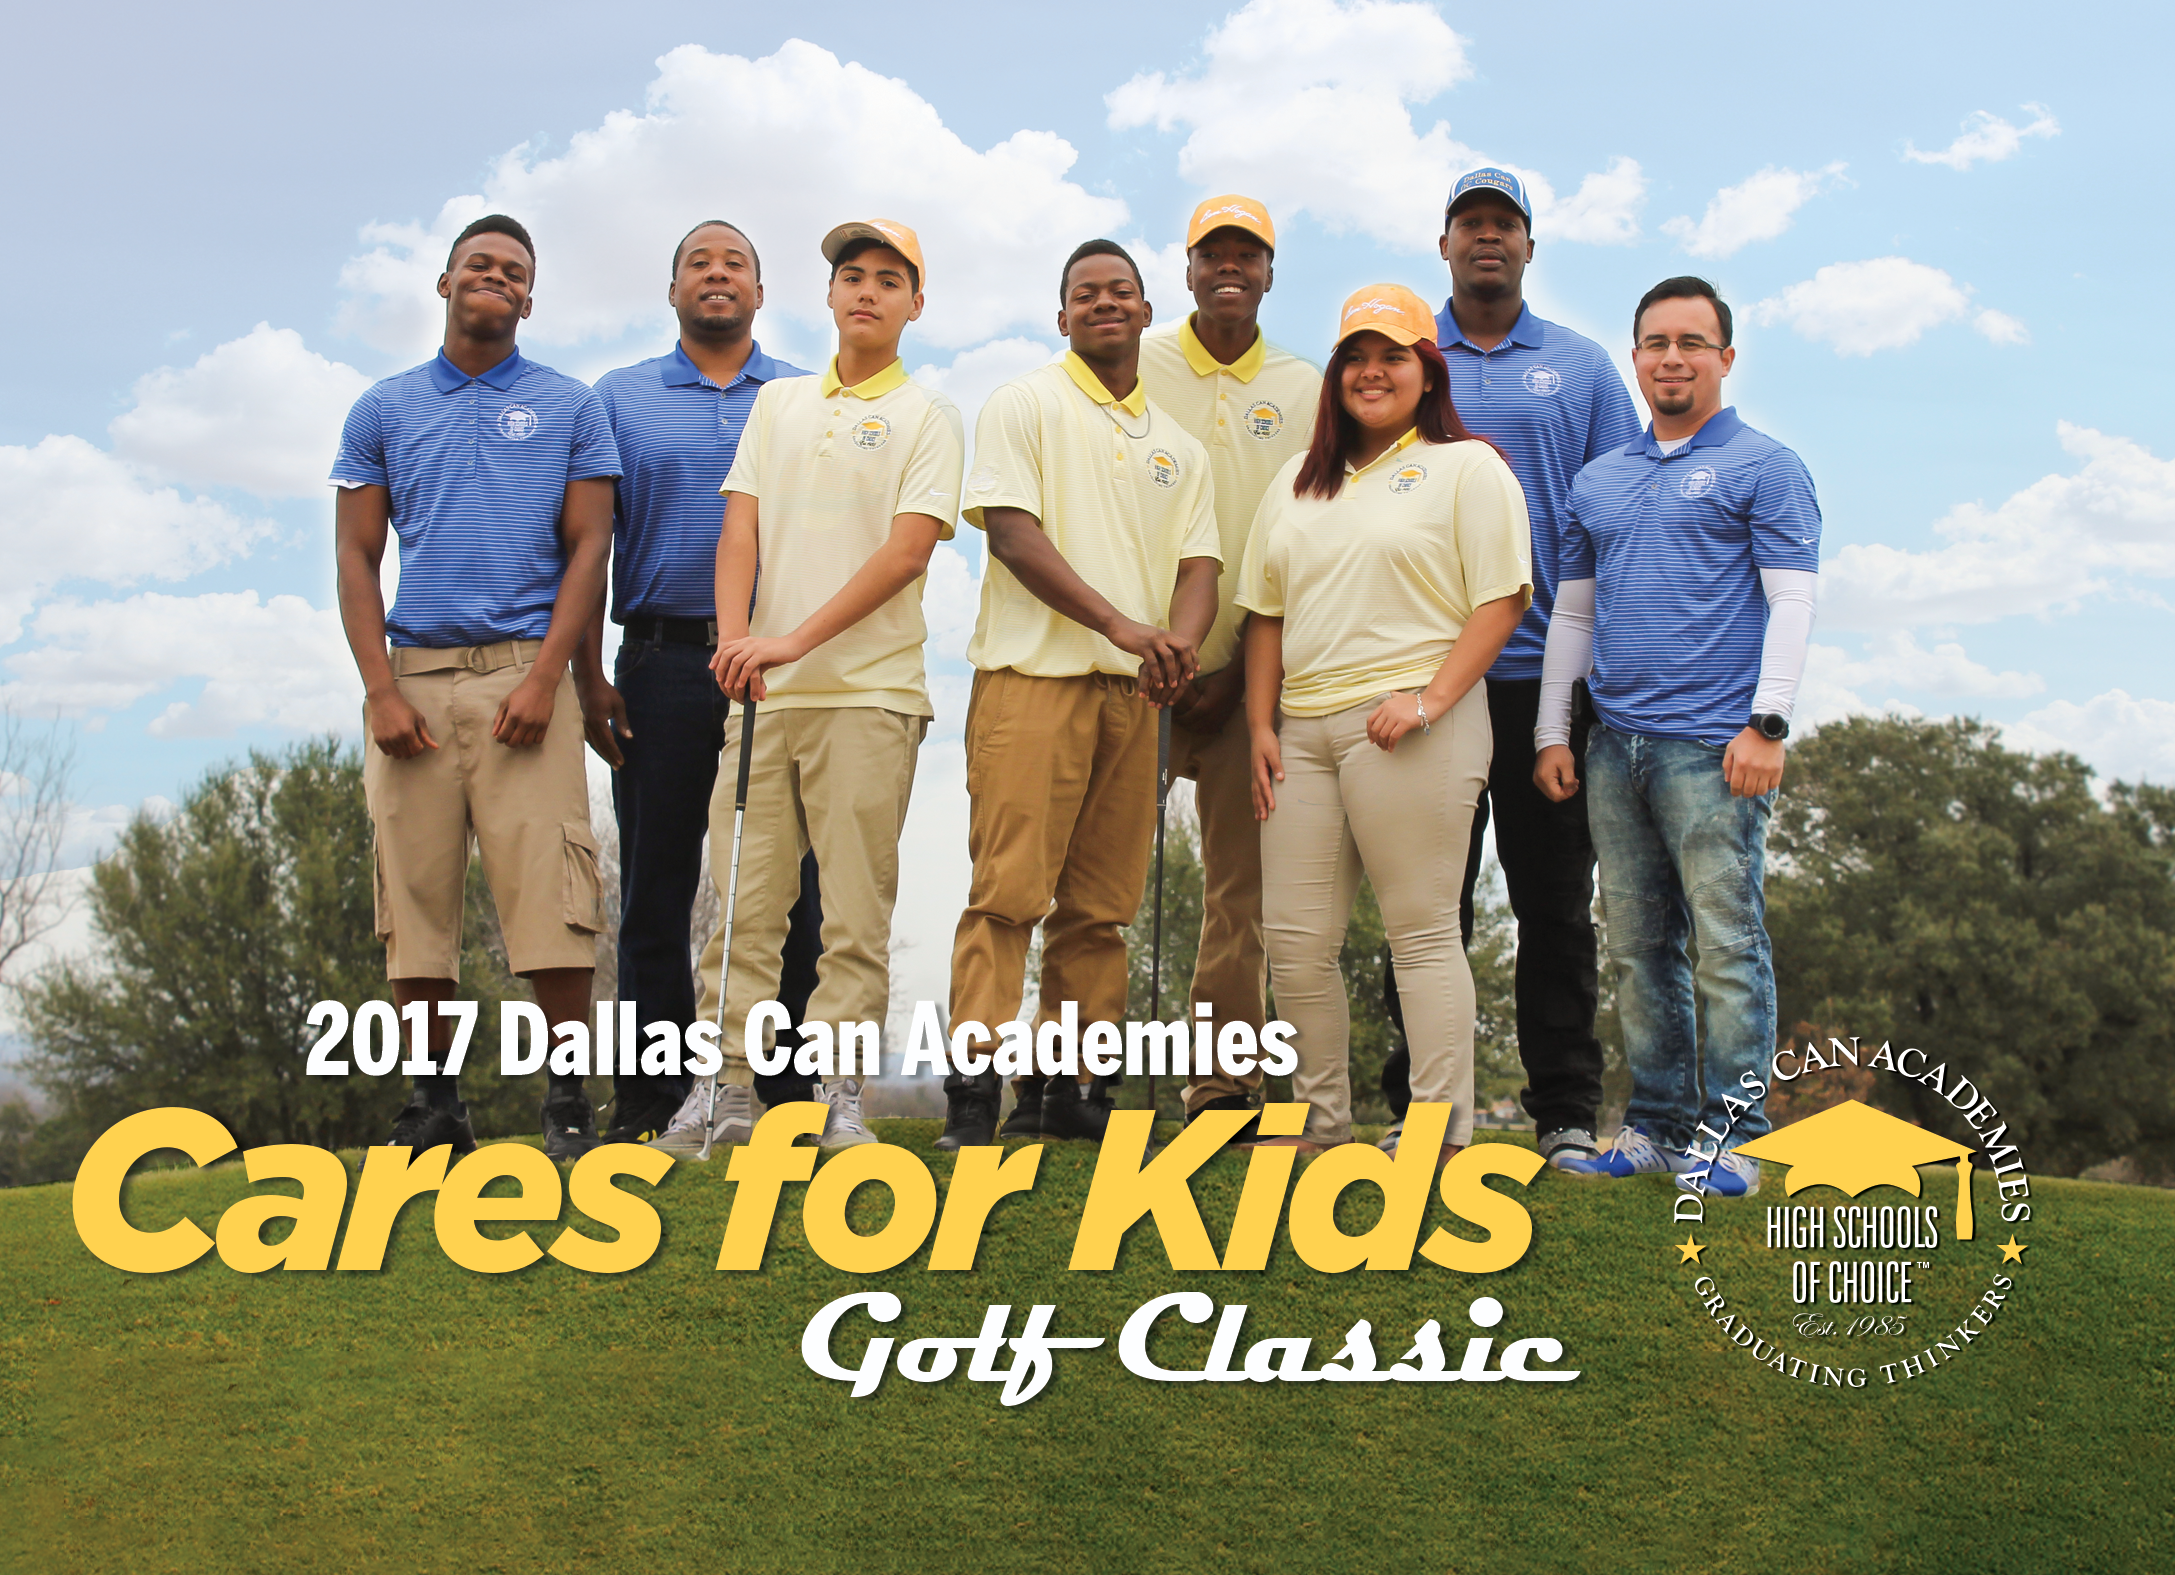 Dallas Can Academies Cares for Kids Golf Classic - Texans Can Academies